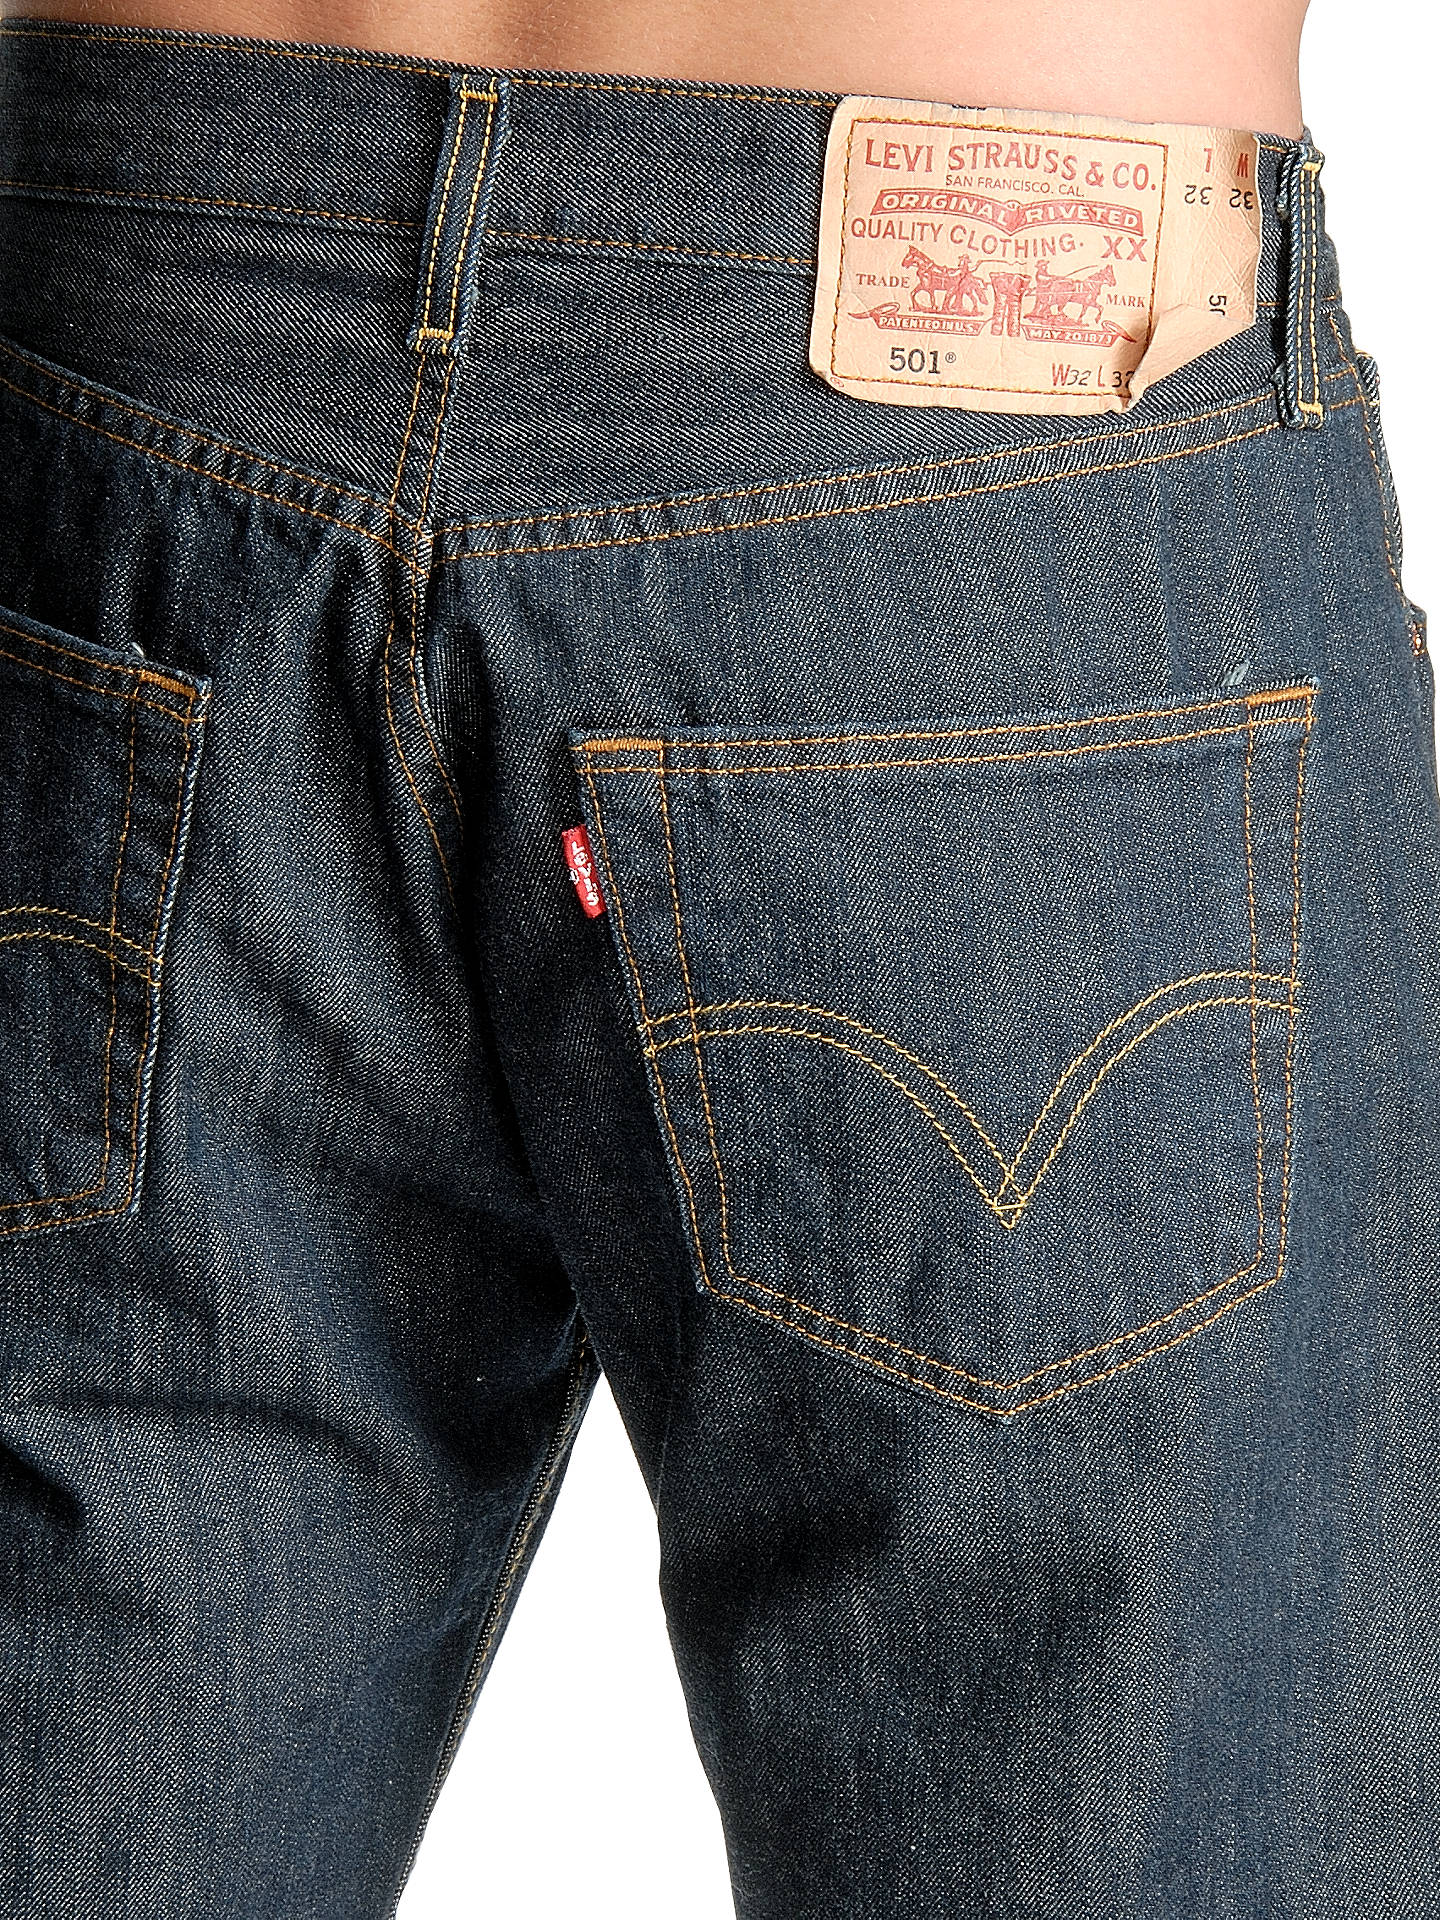 ... Buy Levi s 501 Original Straight Jeans